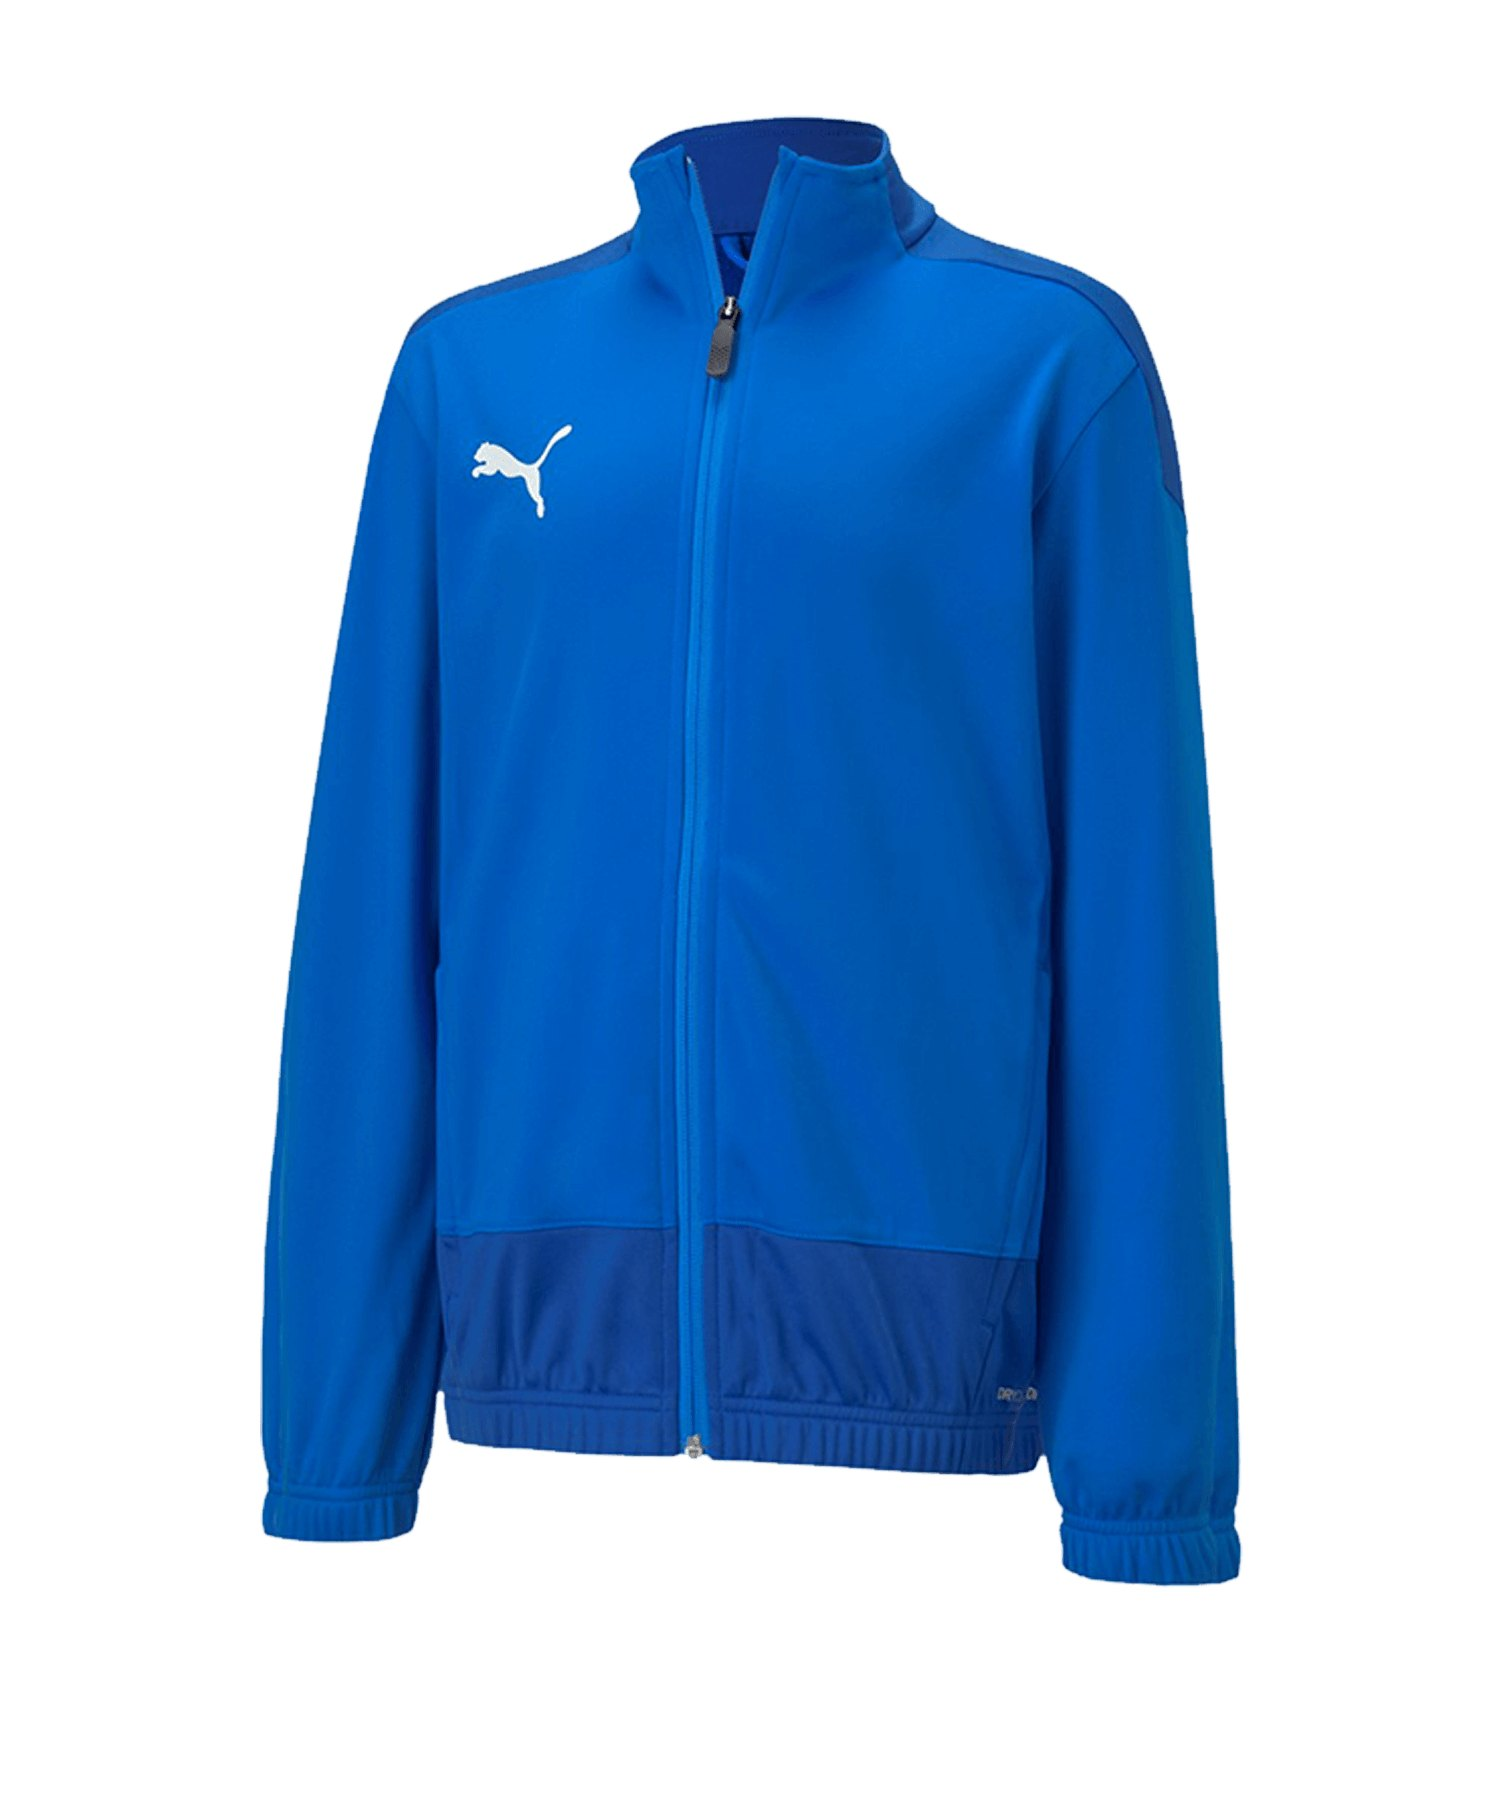 PUMA teamGOAL 23 Training Jacke Kids Blau F02 - blau